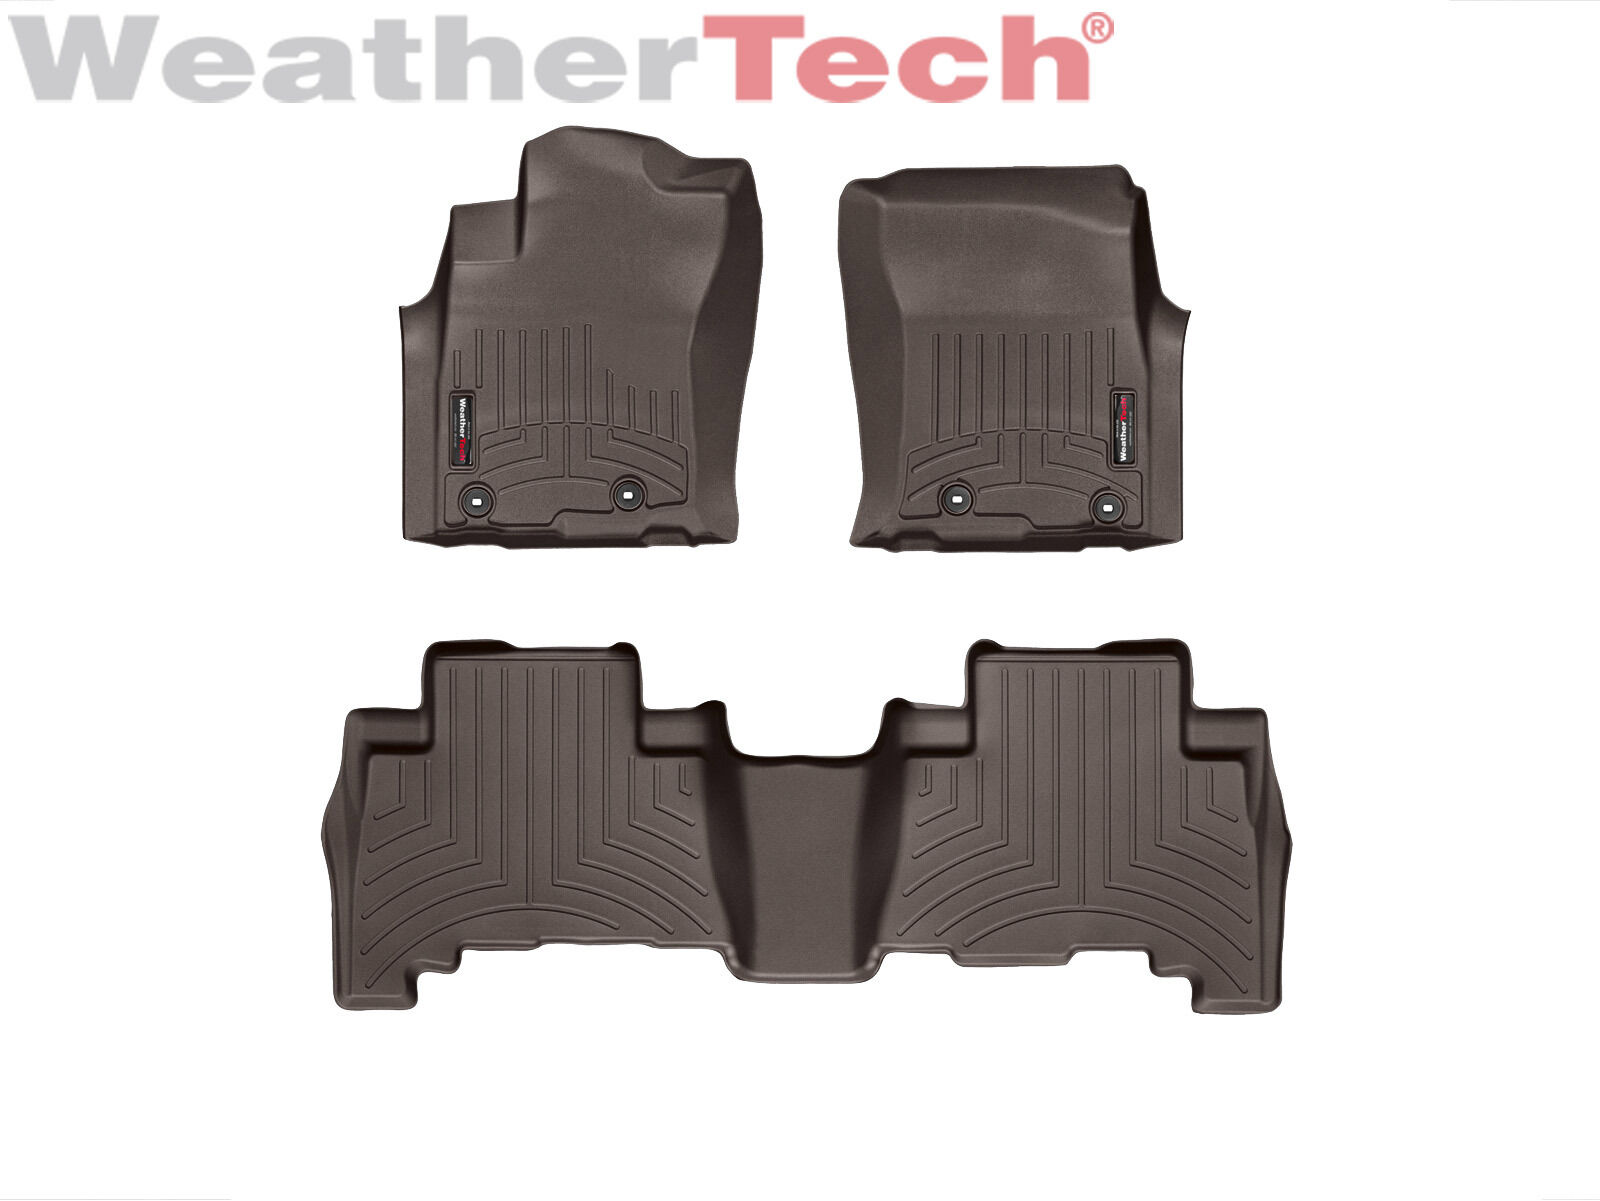 Suv Floor Mats >> Details About Weathertech Suv Floor Mats Floorliner For 4runner Gx 1st 2nd Row Cocoa